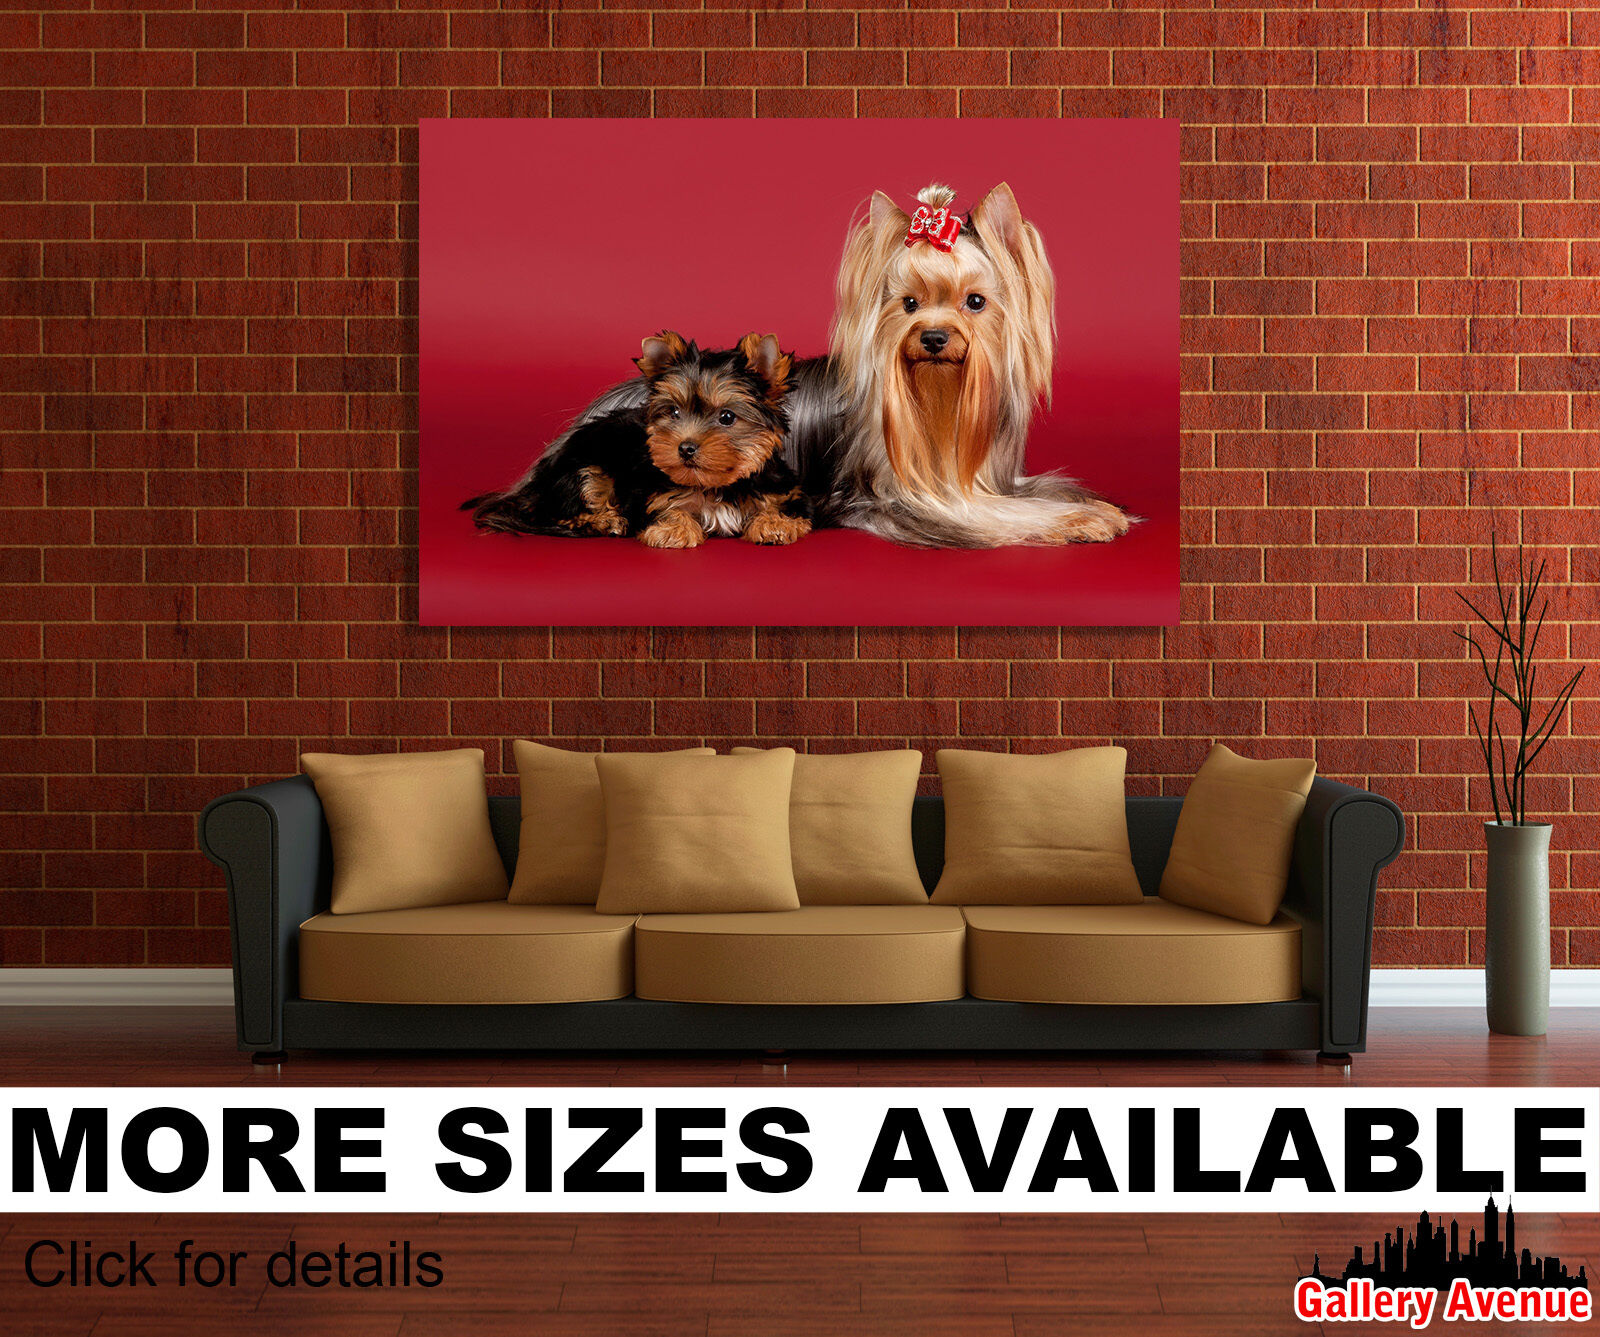 Wall Art Canvas Picture Print - Beautiful Yorkie Yorkshire Terrier Dog Puppy 3.2